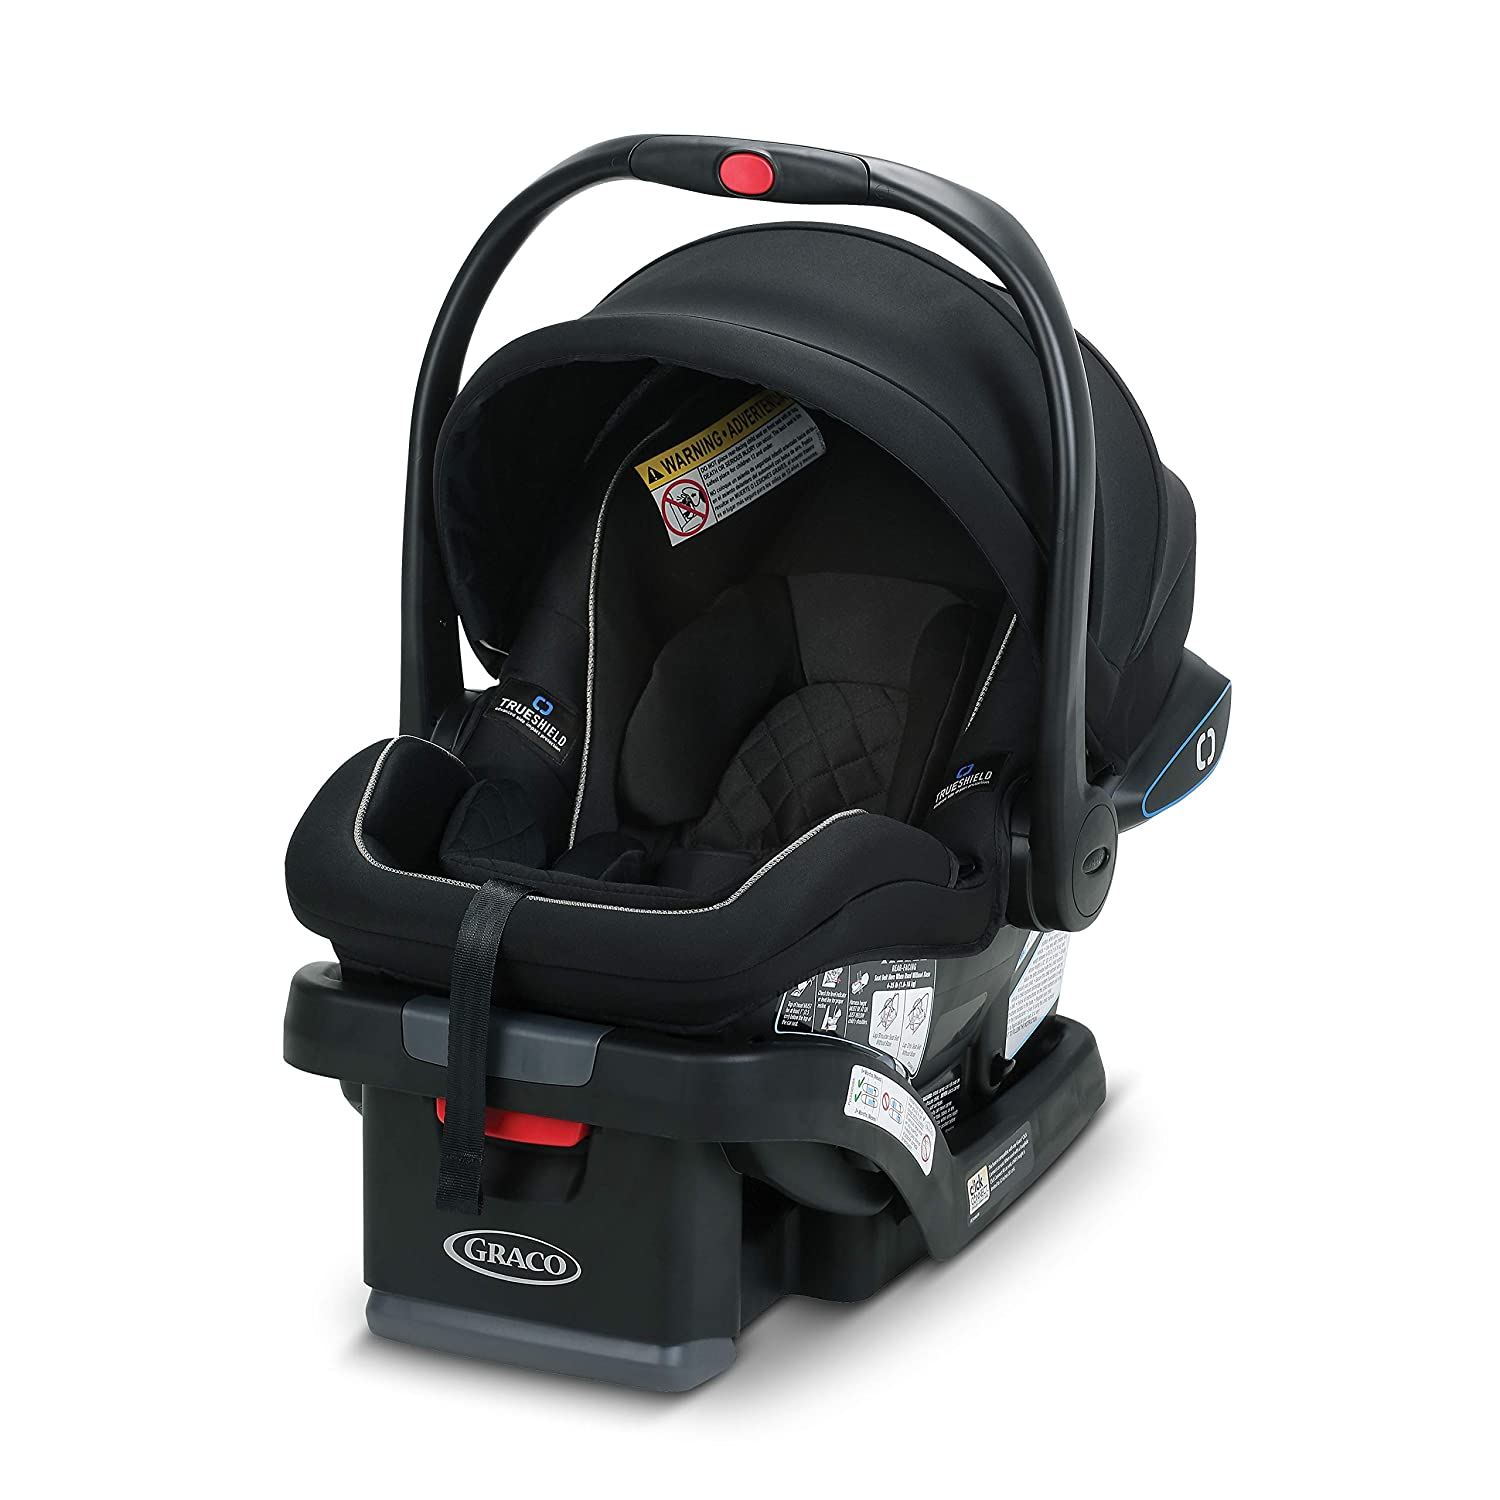 Graco Snug ride Baby Car Seat